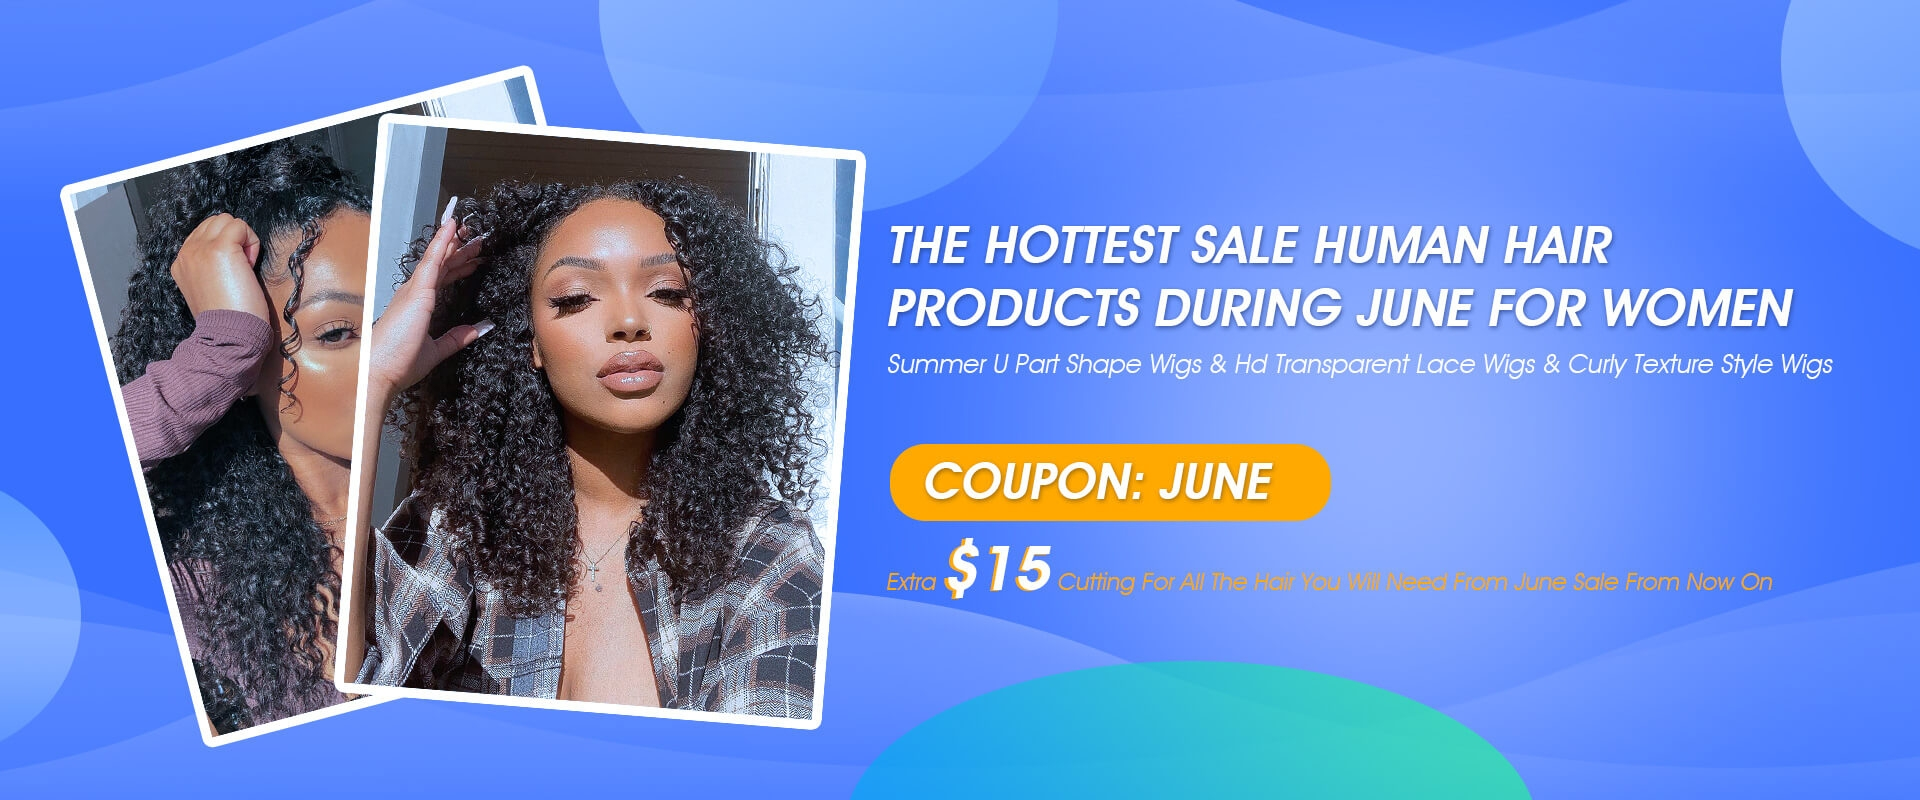 quality human hair products for women online sale now